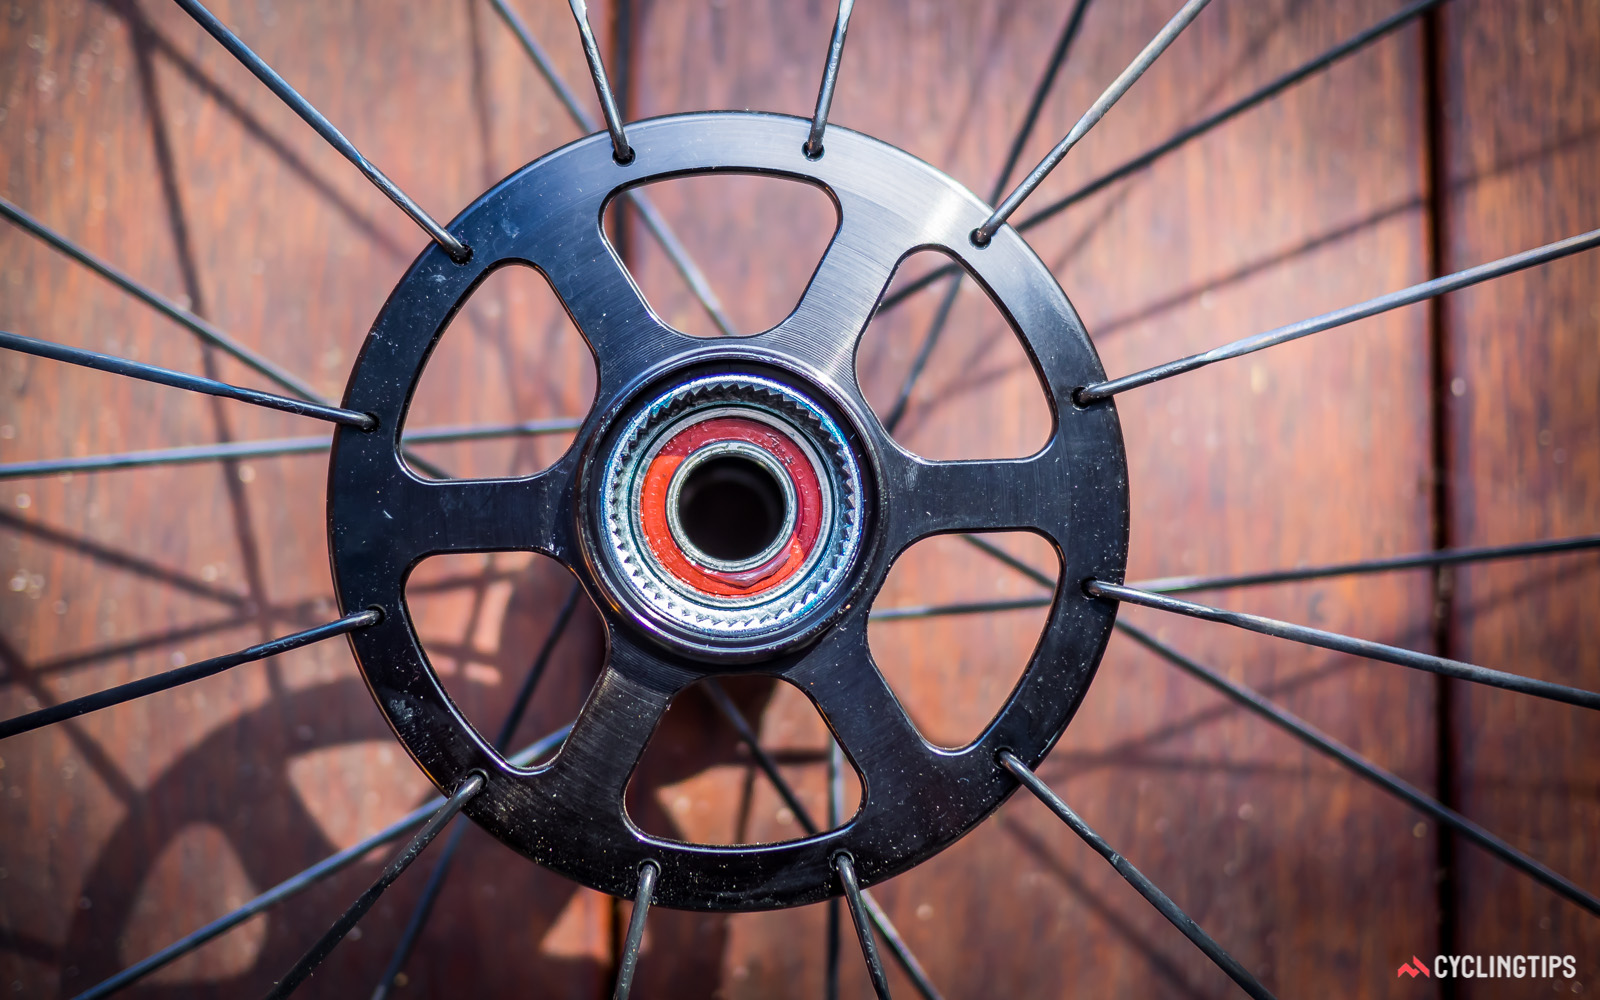 The radial lacing pattern used for the drive-side -f the rear wheel orients the spoke heads inwards.